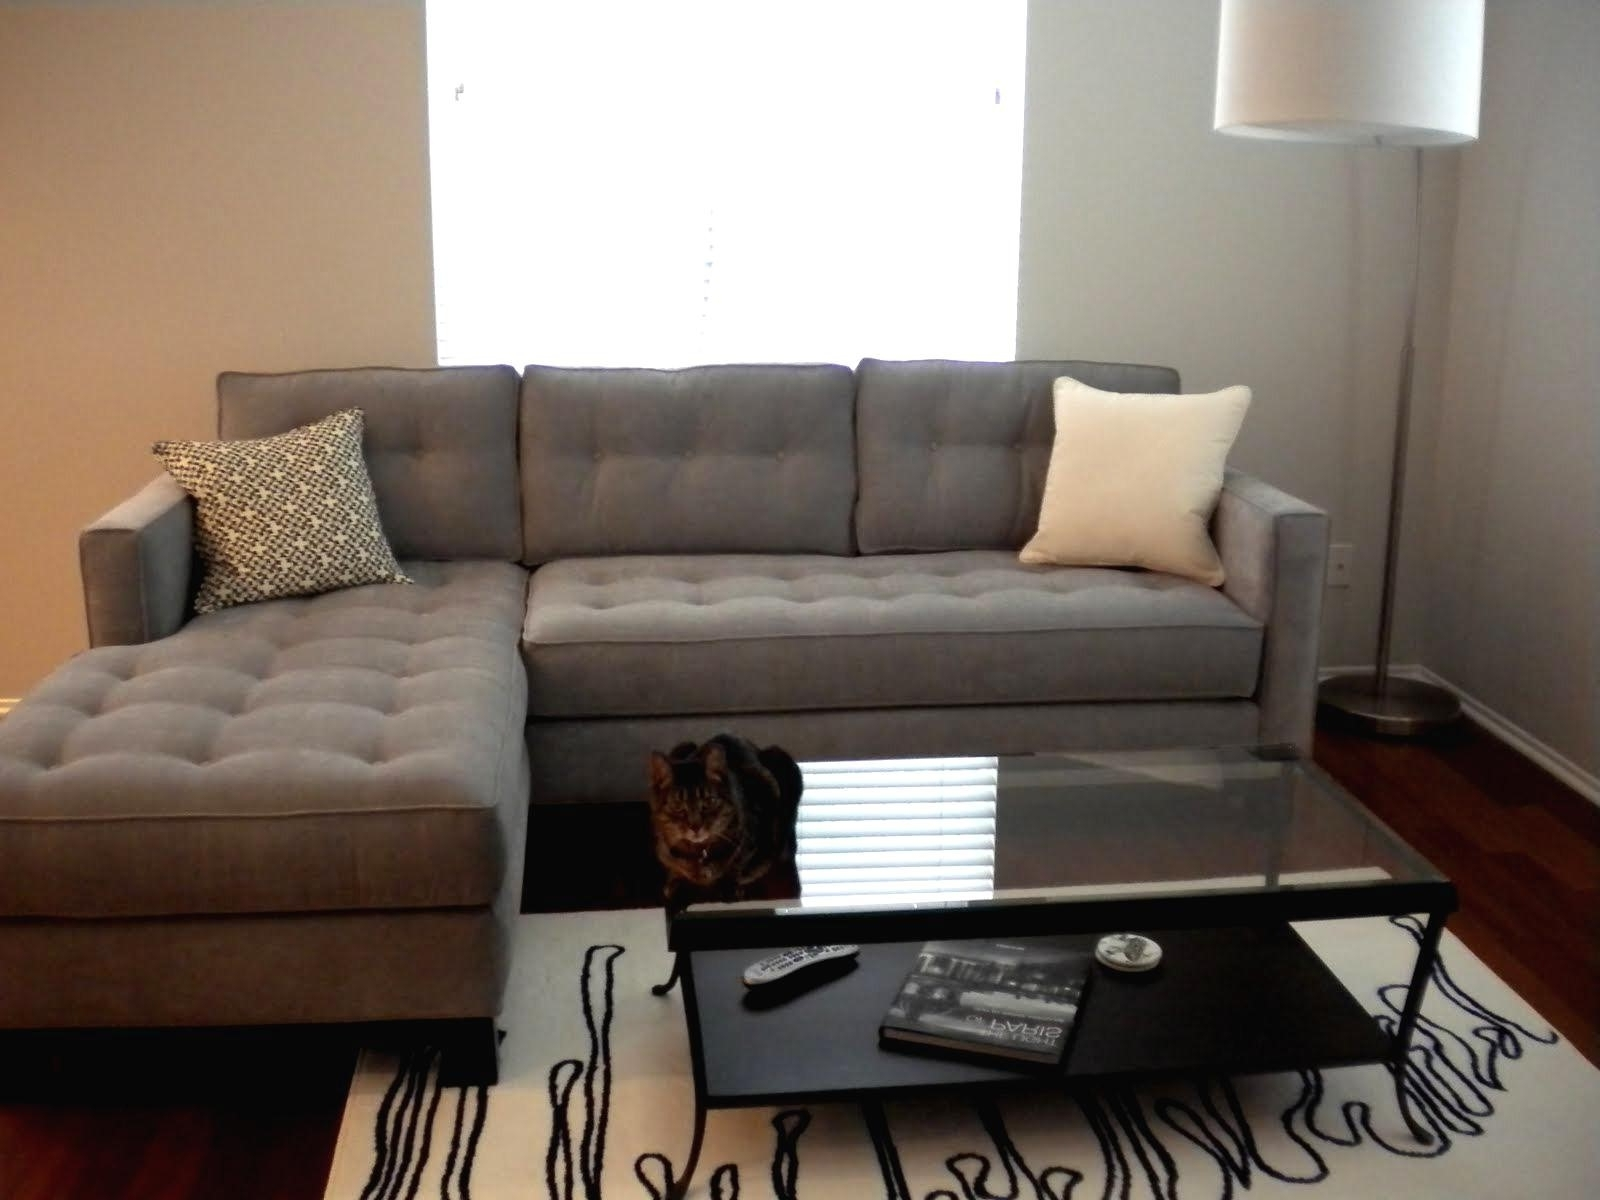 Recent Tufted Sectional Sofas With Chaise For Sofa: Tufted Sectional Sofa With Chaise (View 4 of 15)